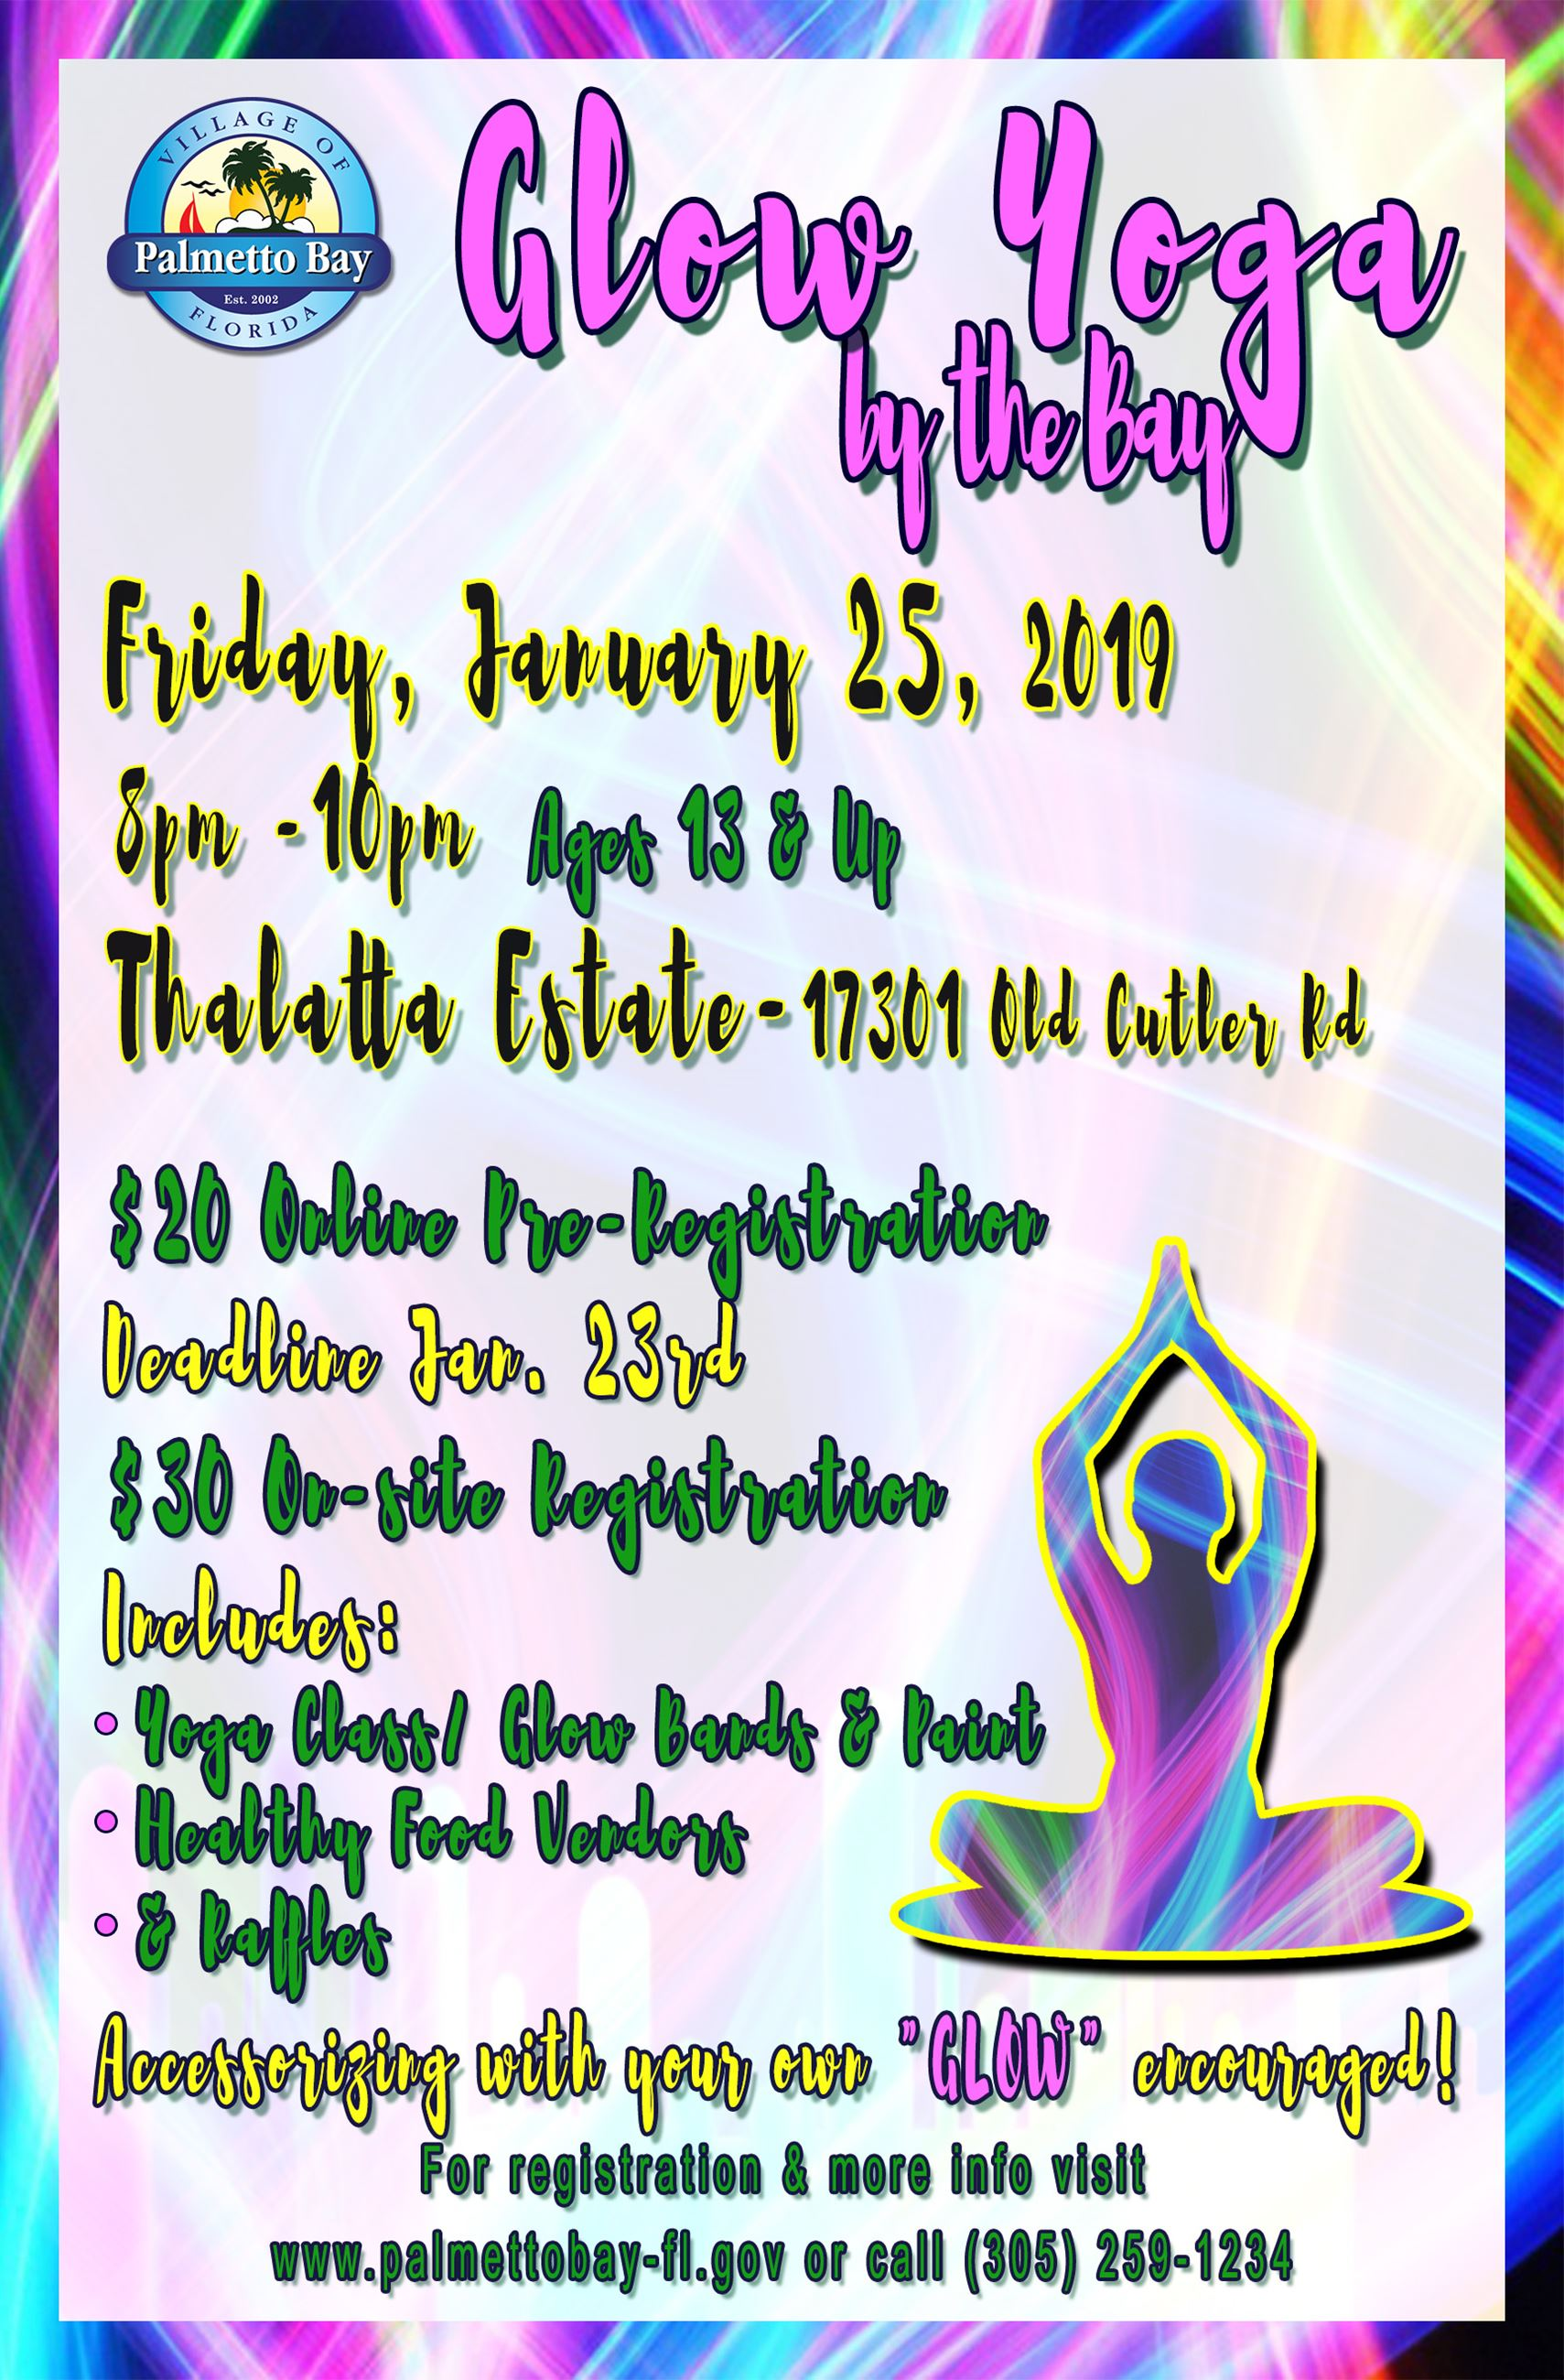 Glow Yoga by the bay_flyer_final